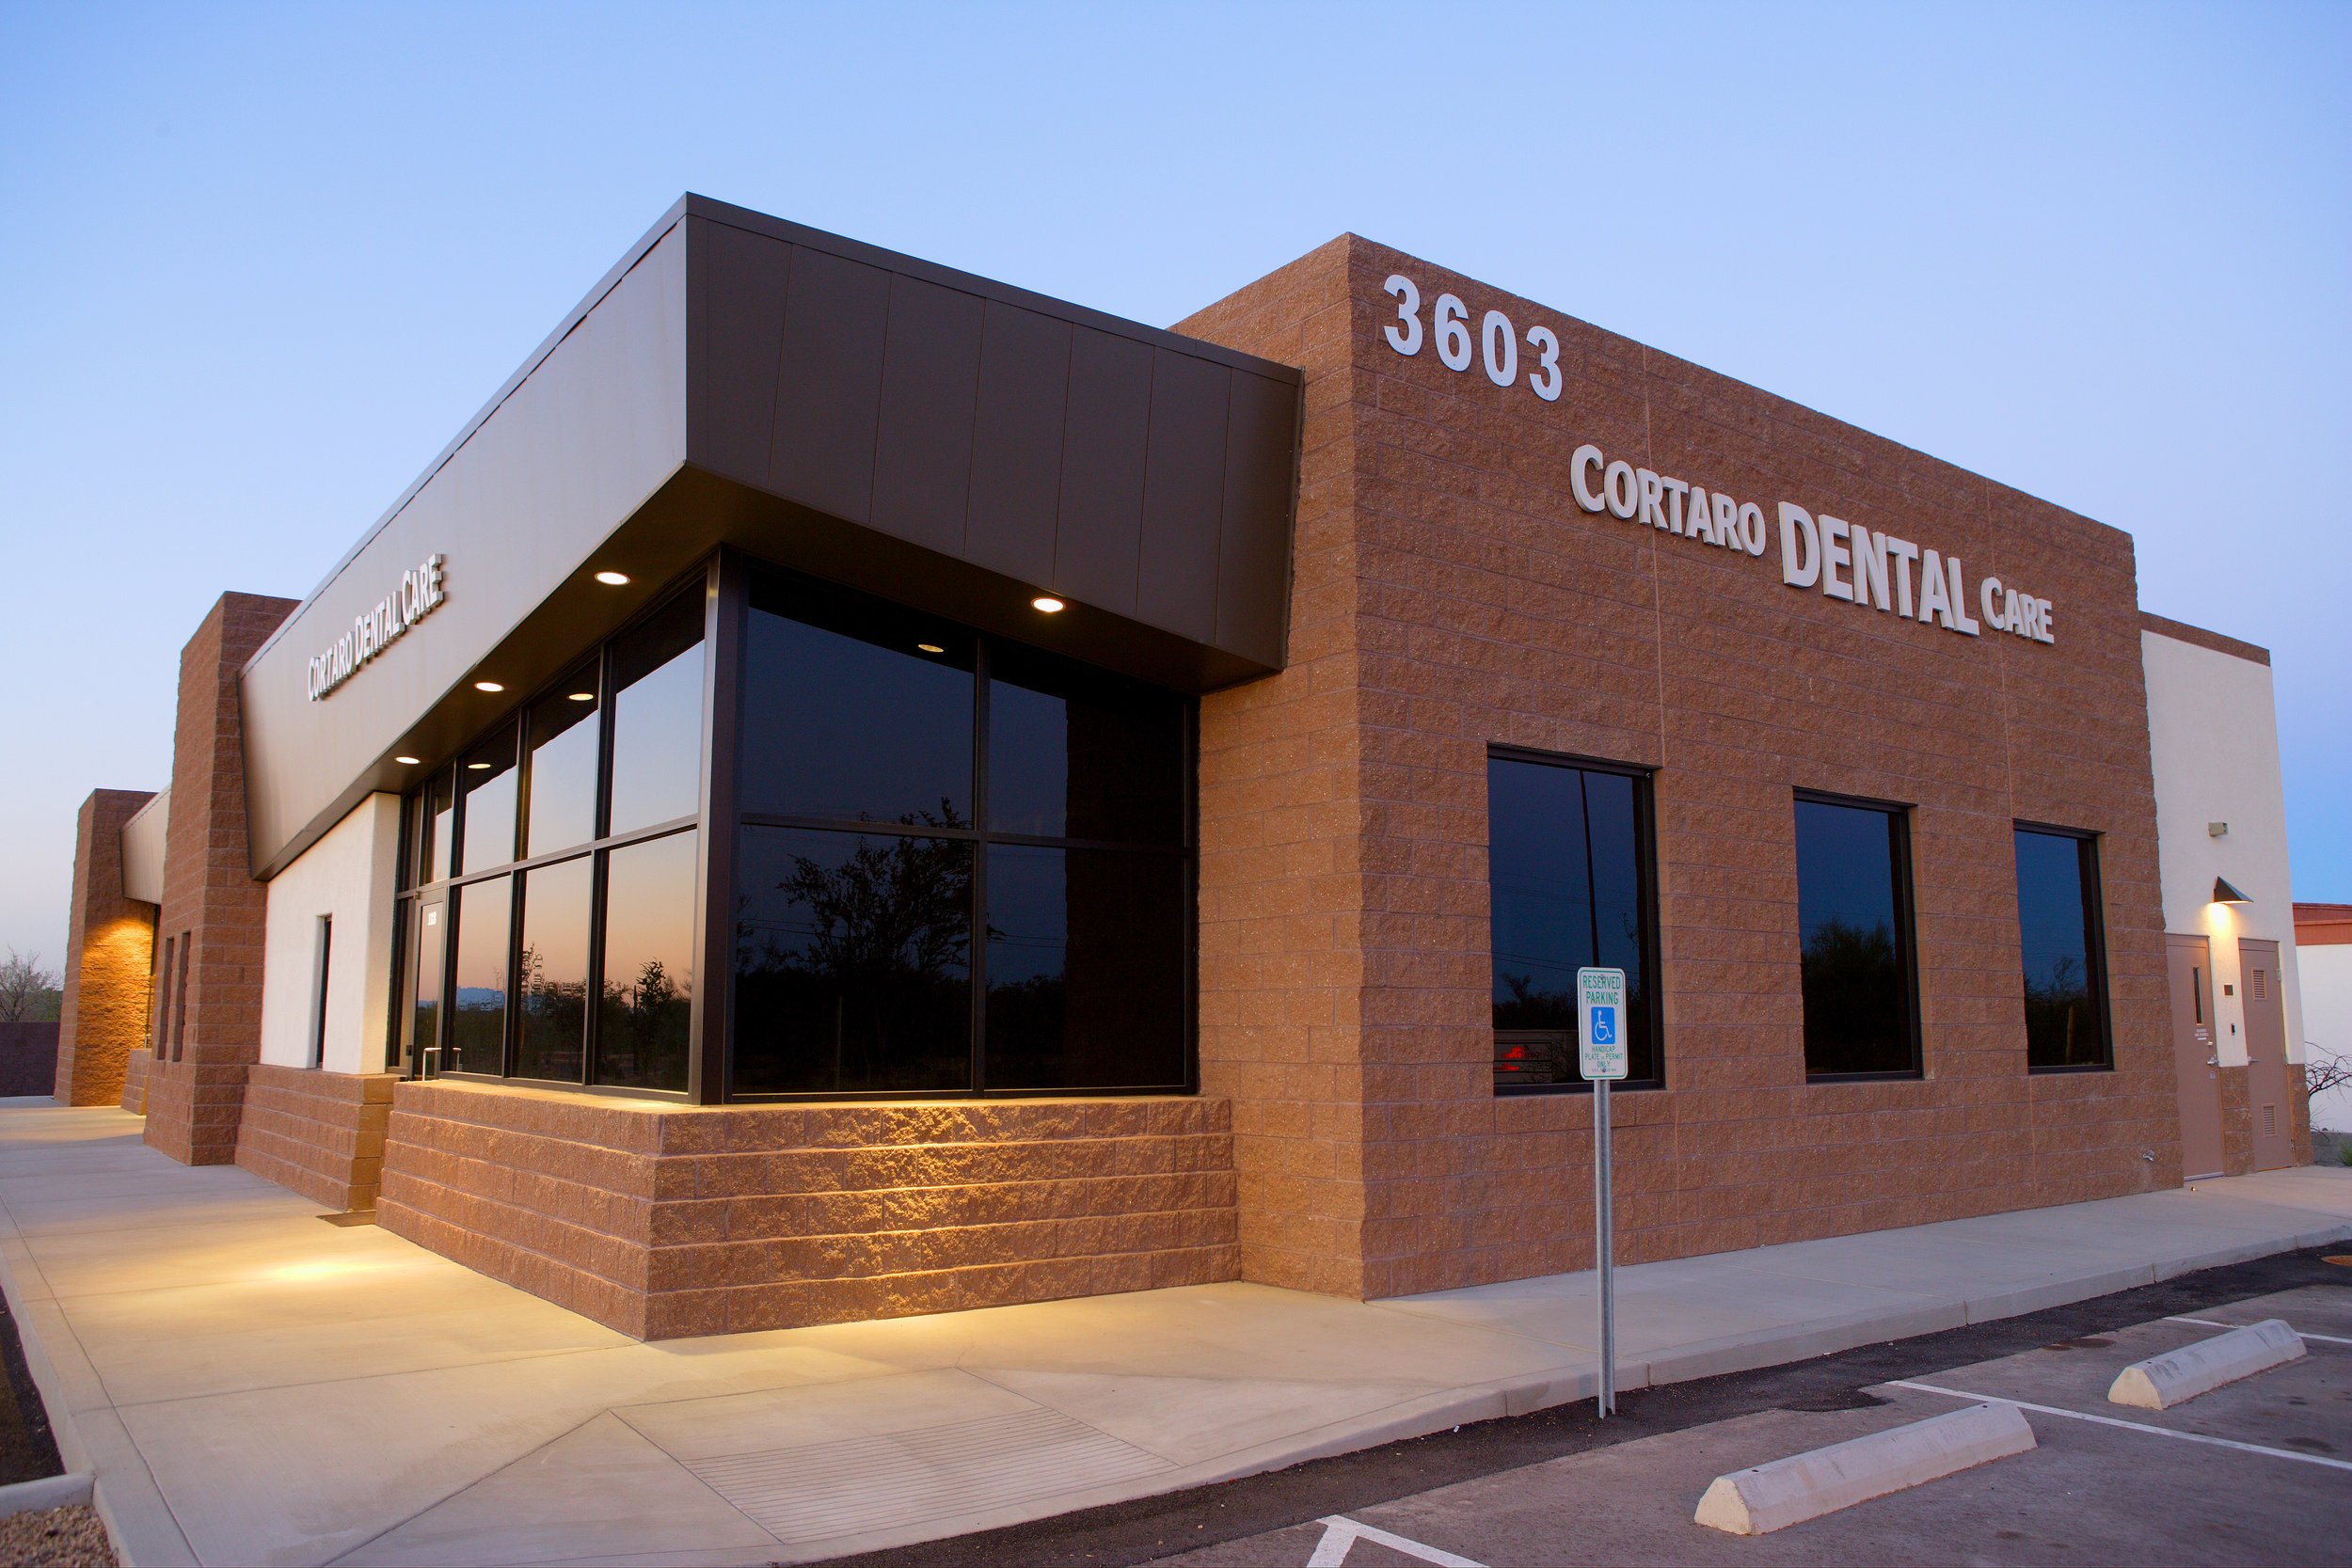 Cortaro Dental Care Photos 007.jpg